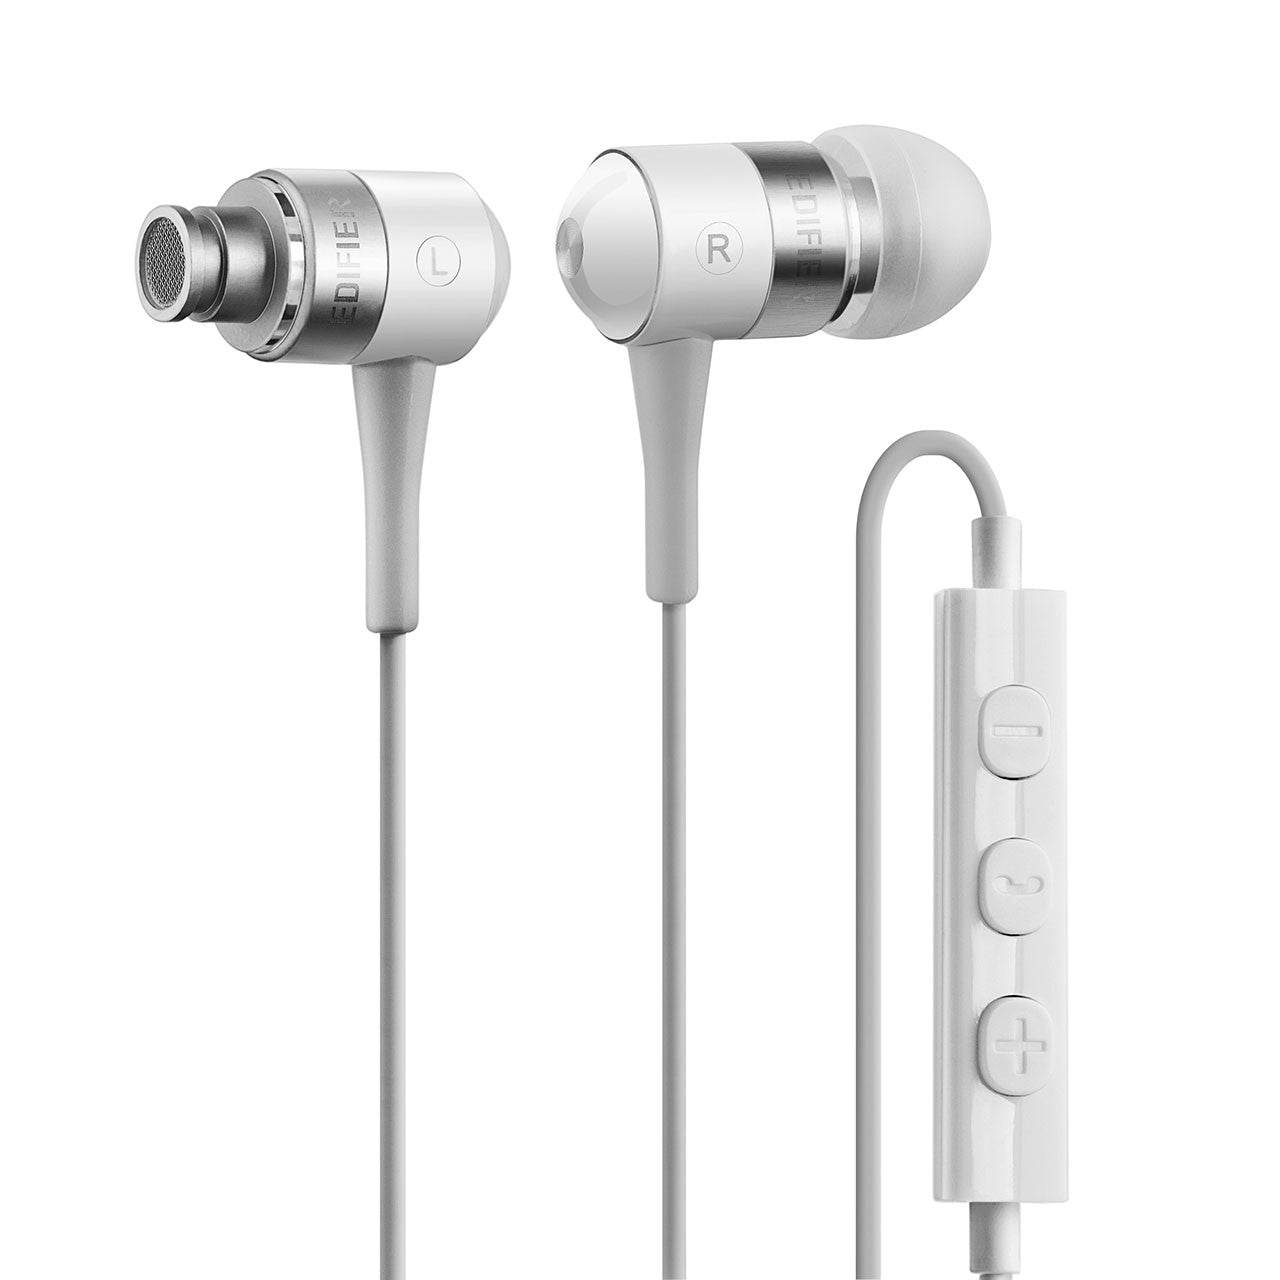 Edifier i285 headphones headset for iPhone - 3.5mm Hi-fi Earphone IEM